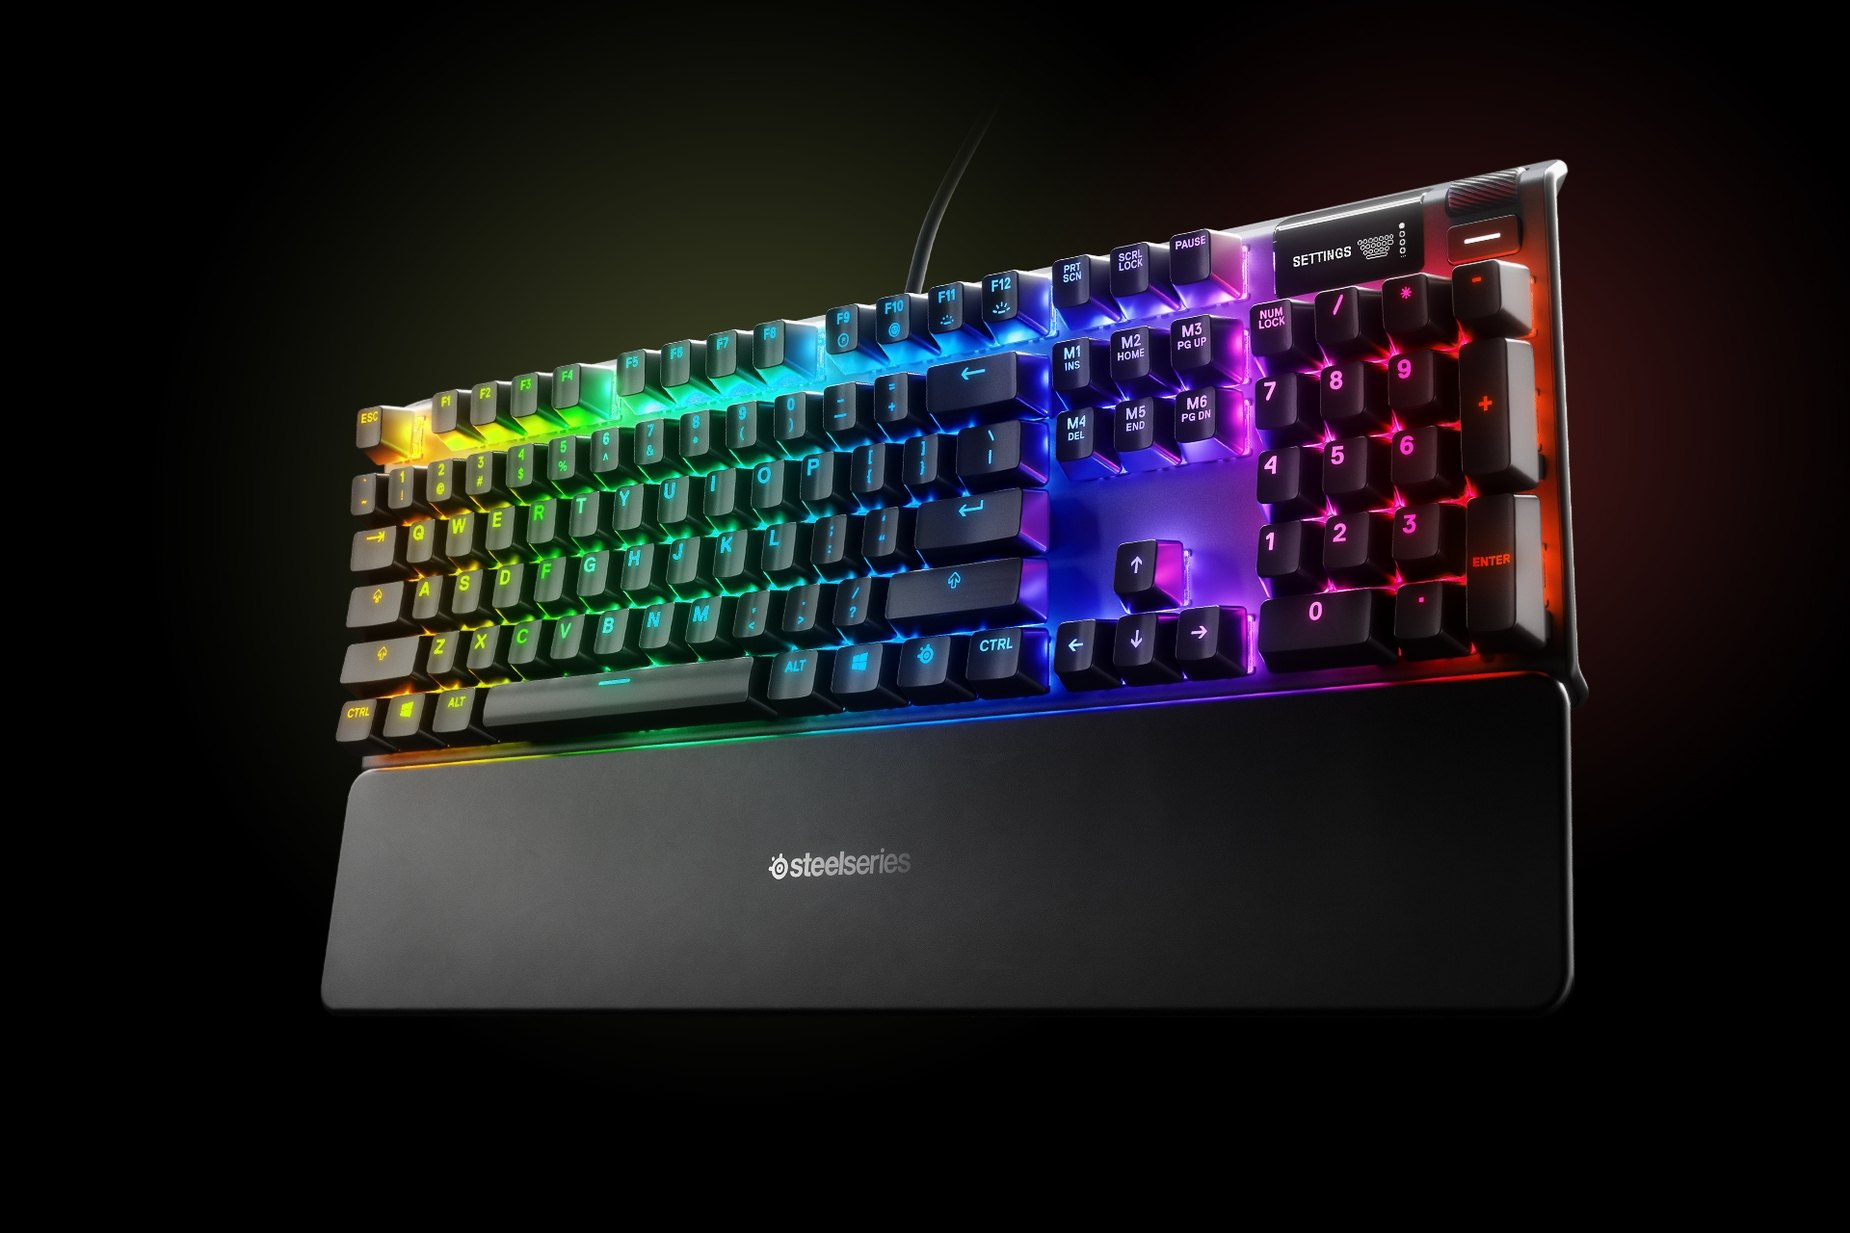 Taiwanese-Apex 7 (Blue Switch) gaming keyboard with the illumination lit up on dark background, also shows the OLED screen and controls used to change settings and adjust audio